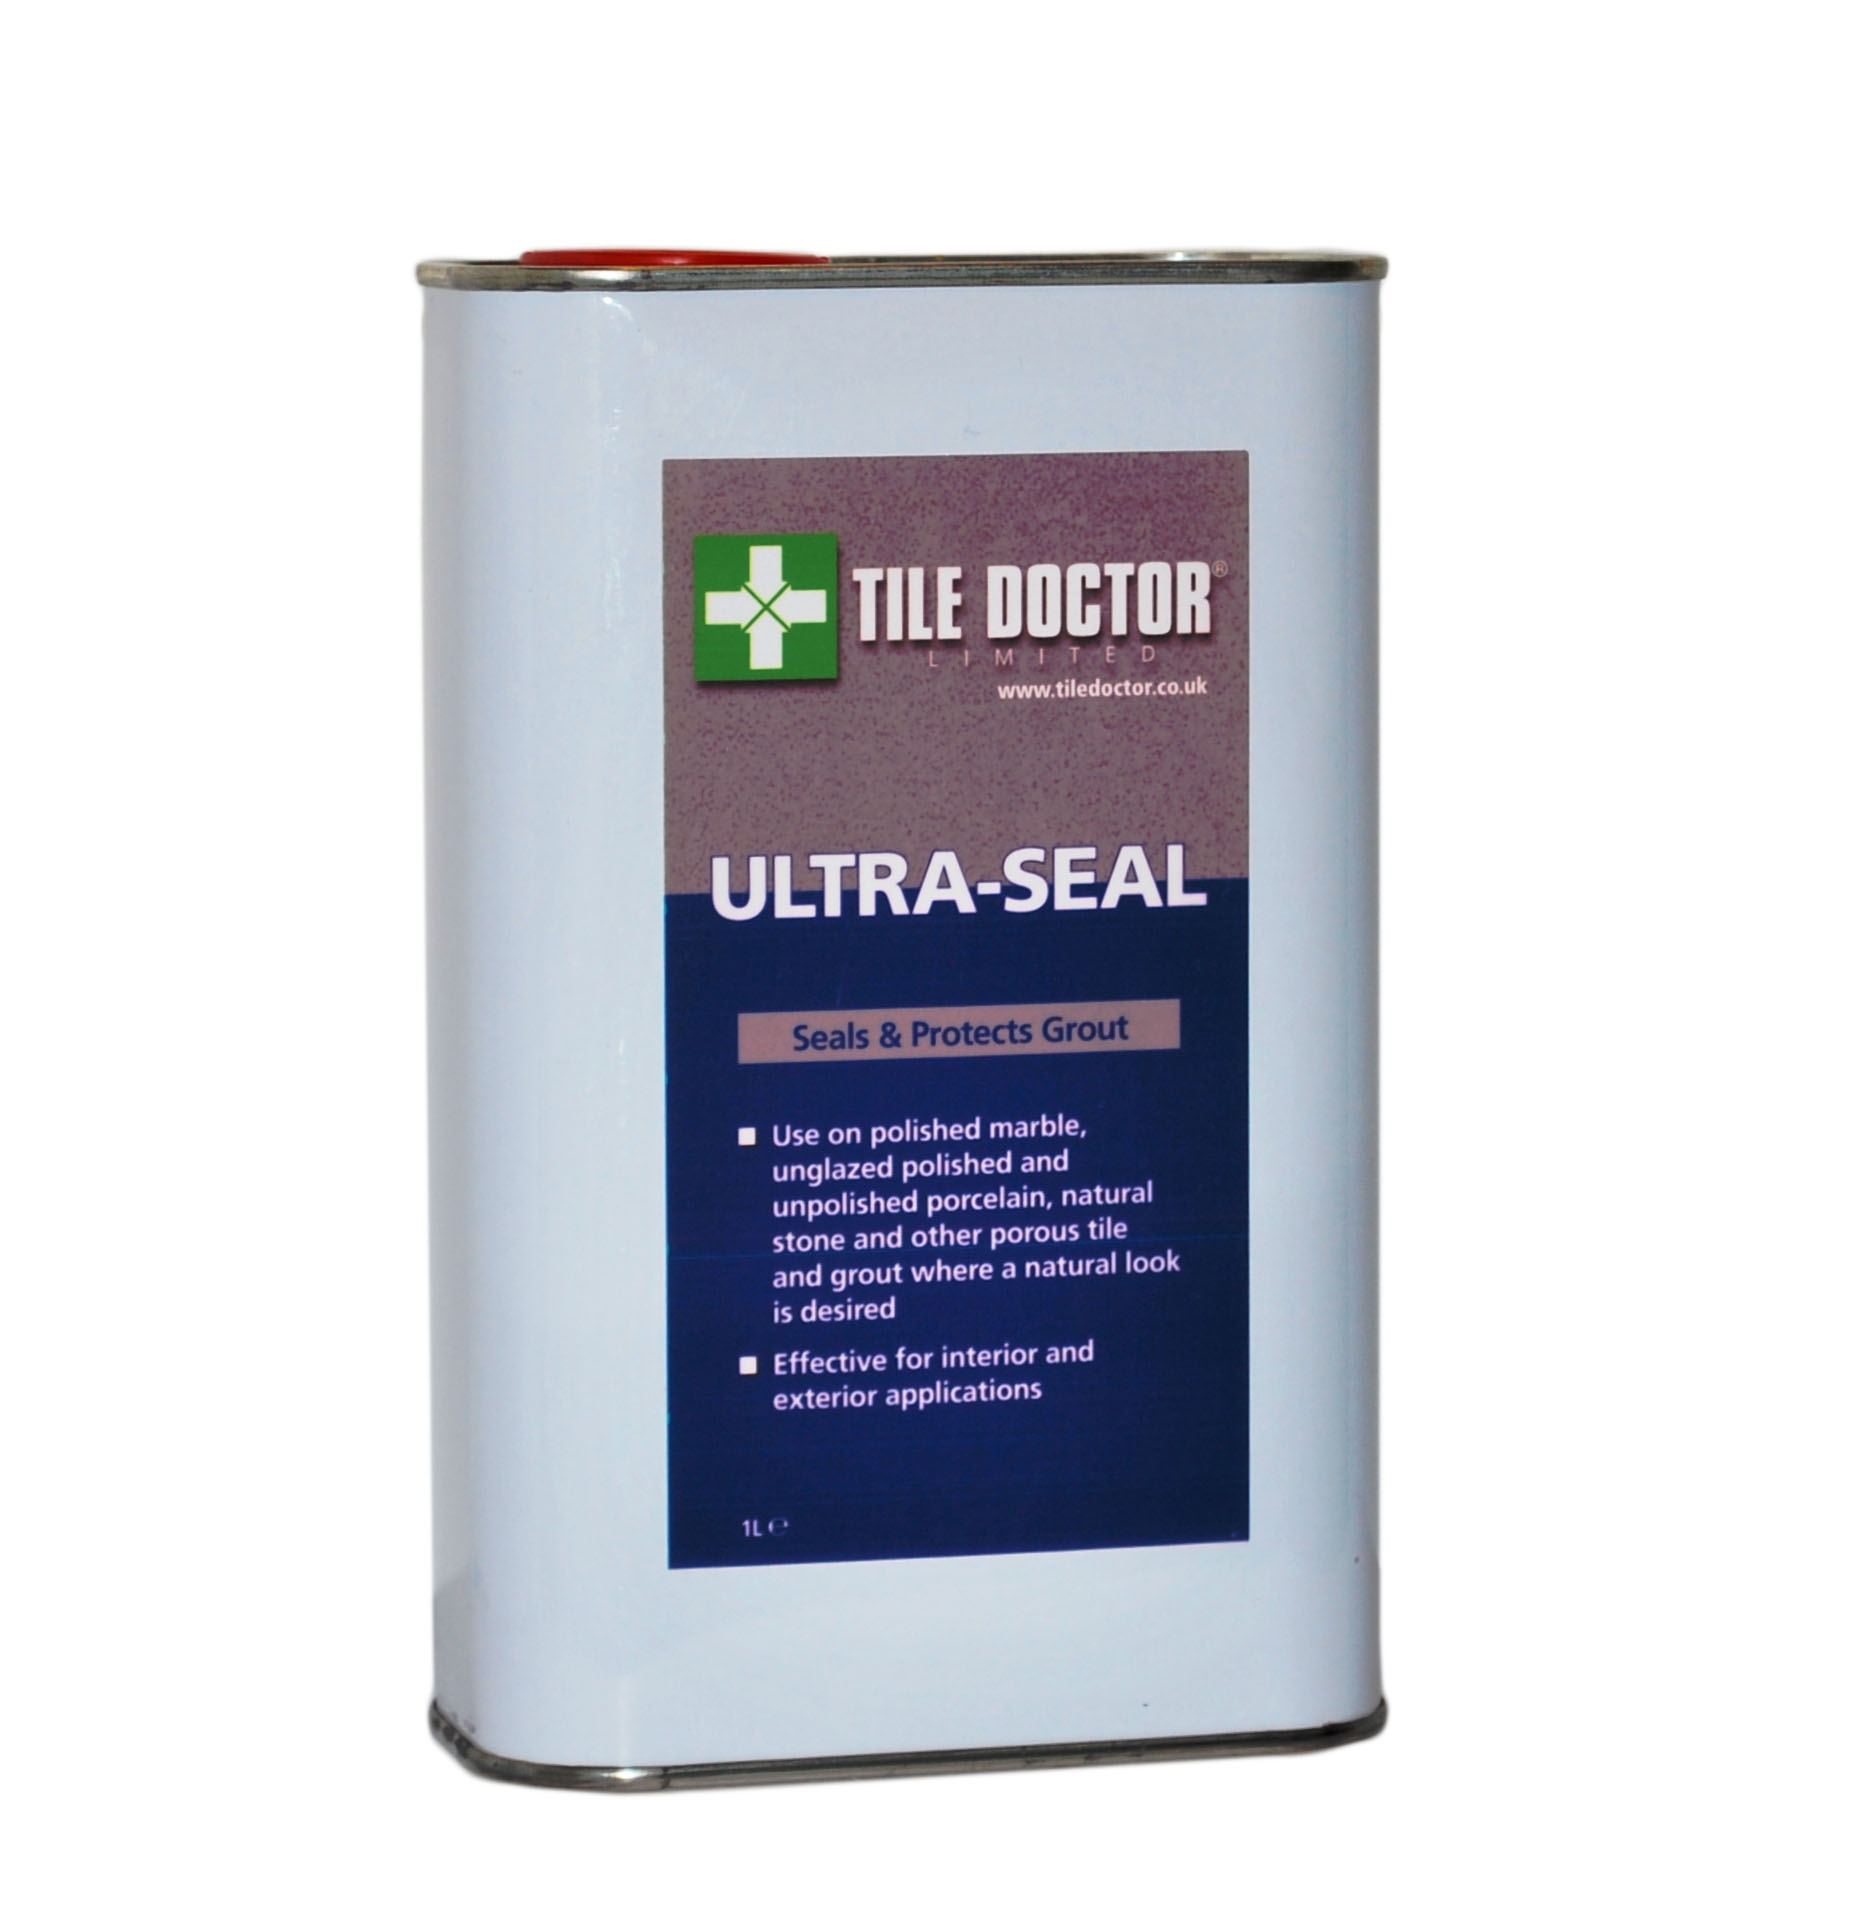 Travertine tile cleaning information tile doctor ultra seal 1 litre doublecrazyfo Gallery